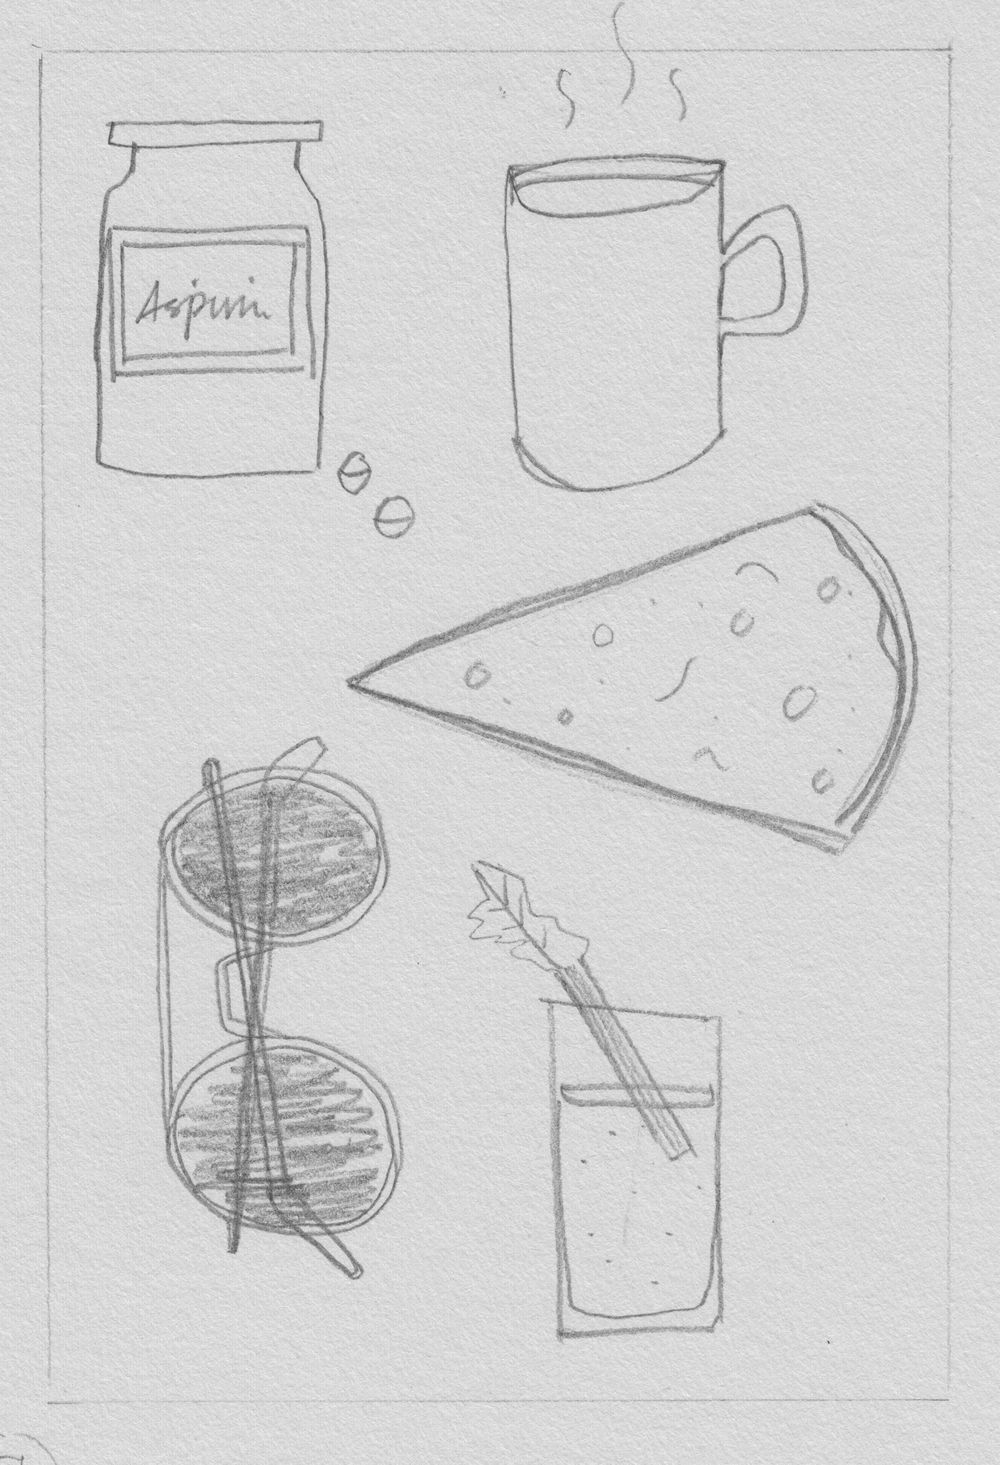 Tools for a Hangover - image 1 - student project